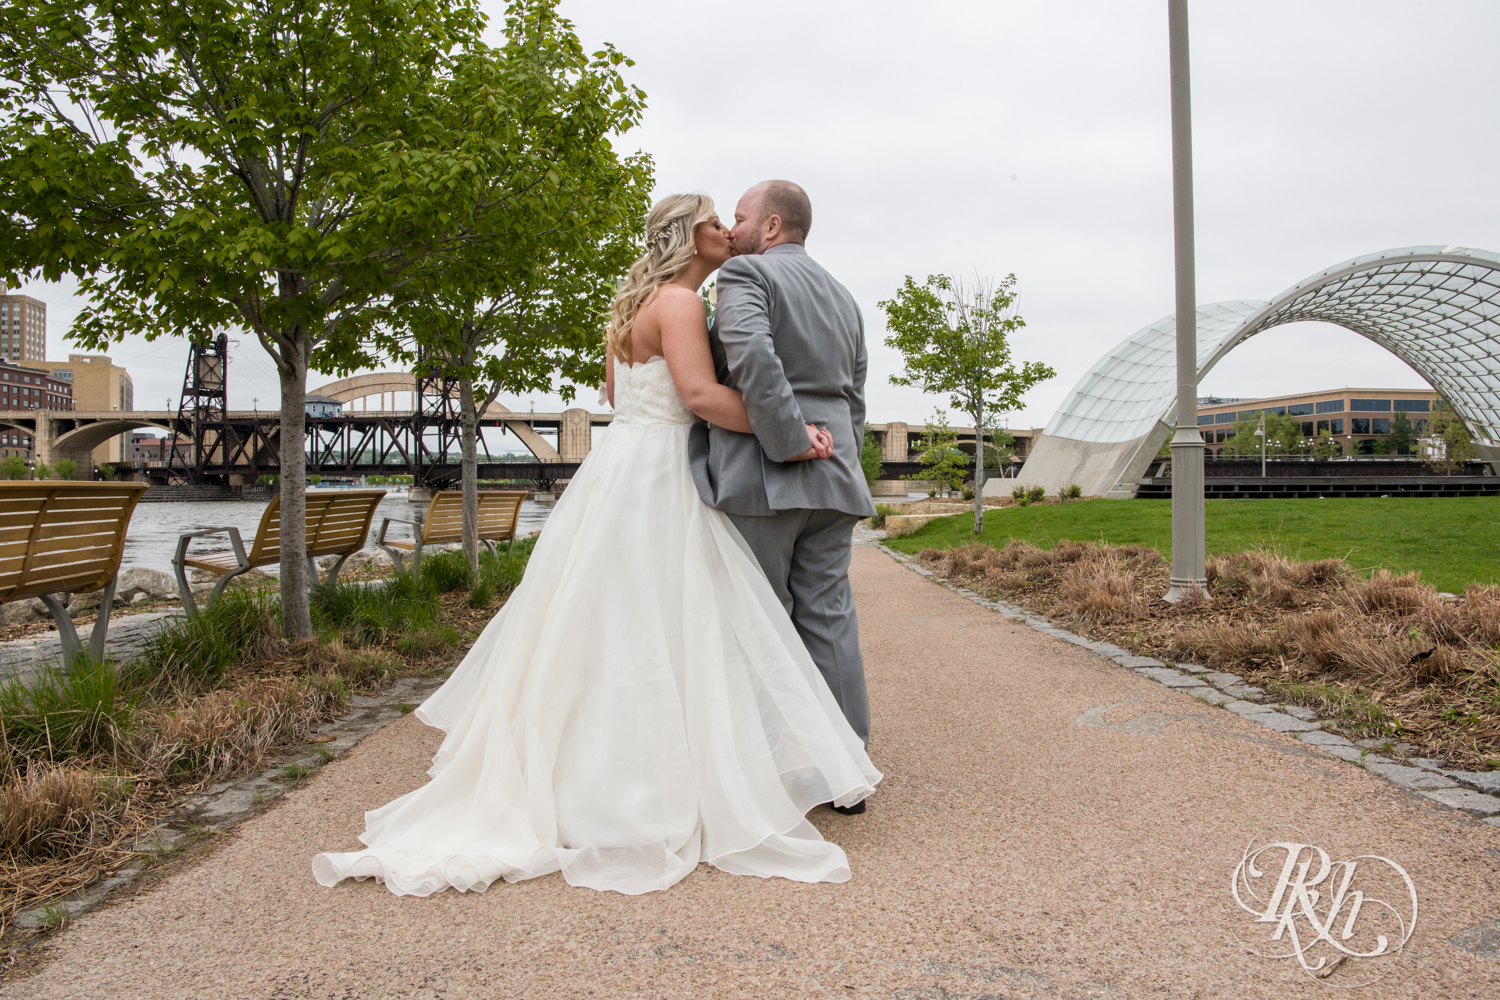 Shannon and Brian - Minnesota Wedding Photography - Raspberry Island - Minnesota Boat Club - RKH Images - Blog  (37 of 60).jpg